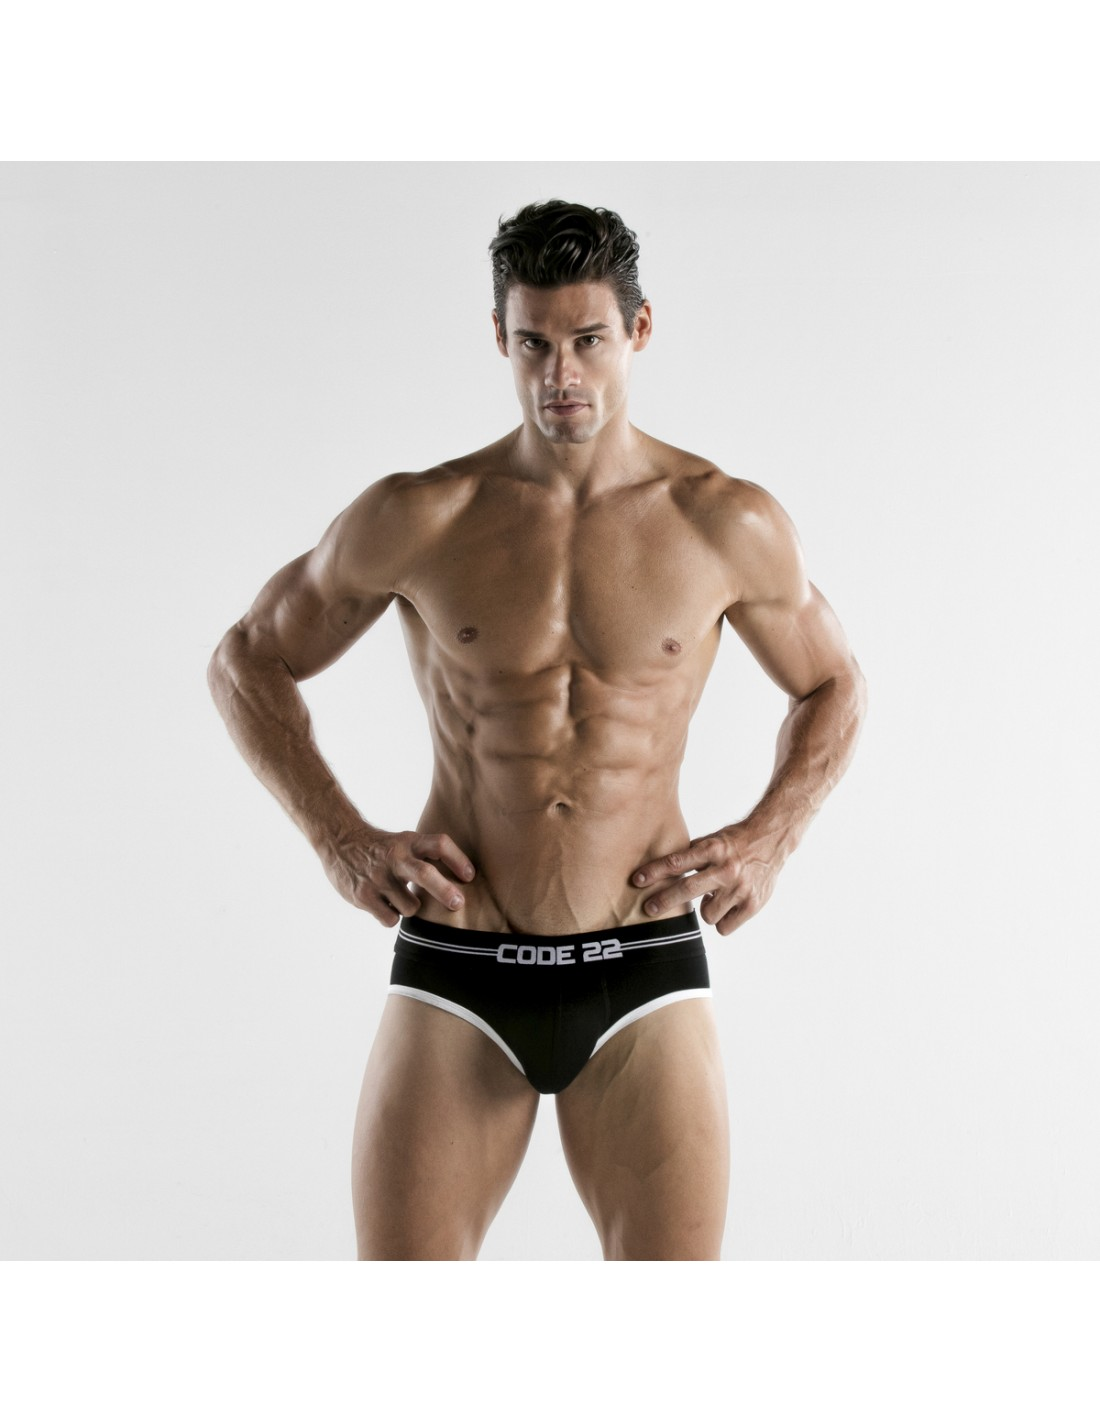 New Code 22 at Men and underwear Store!